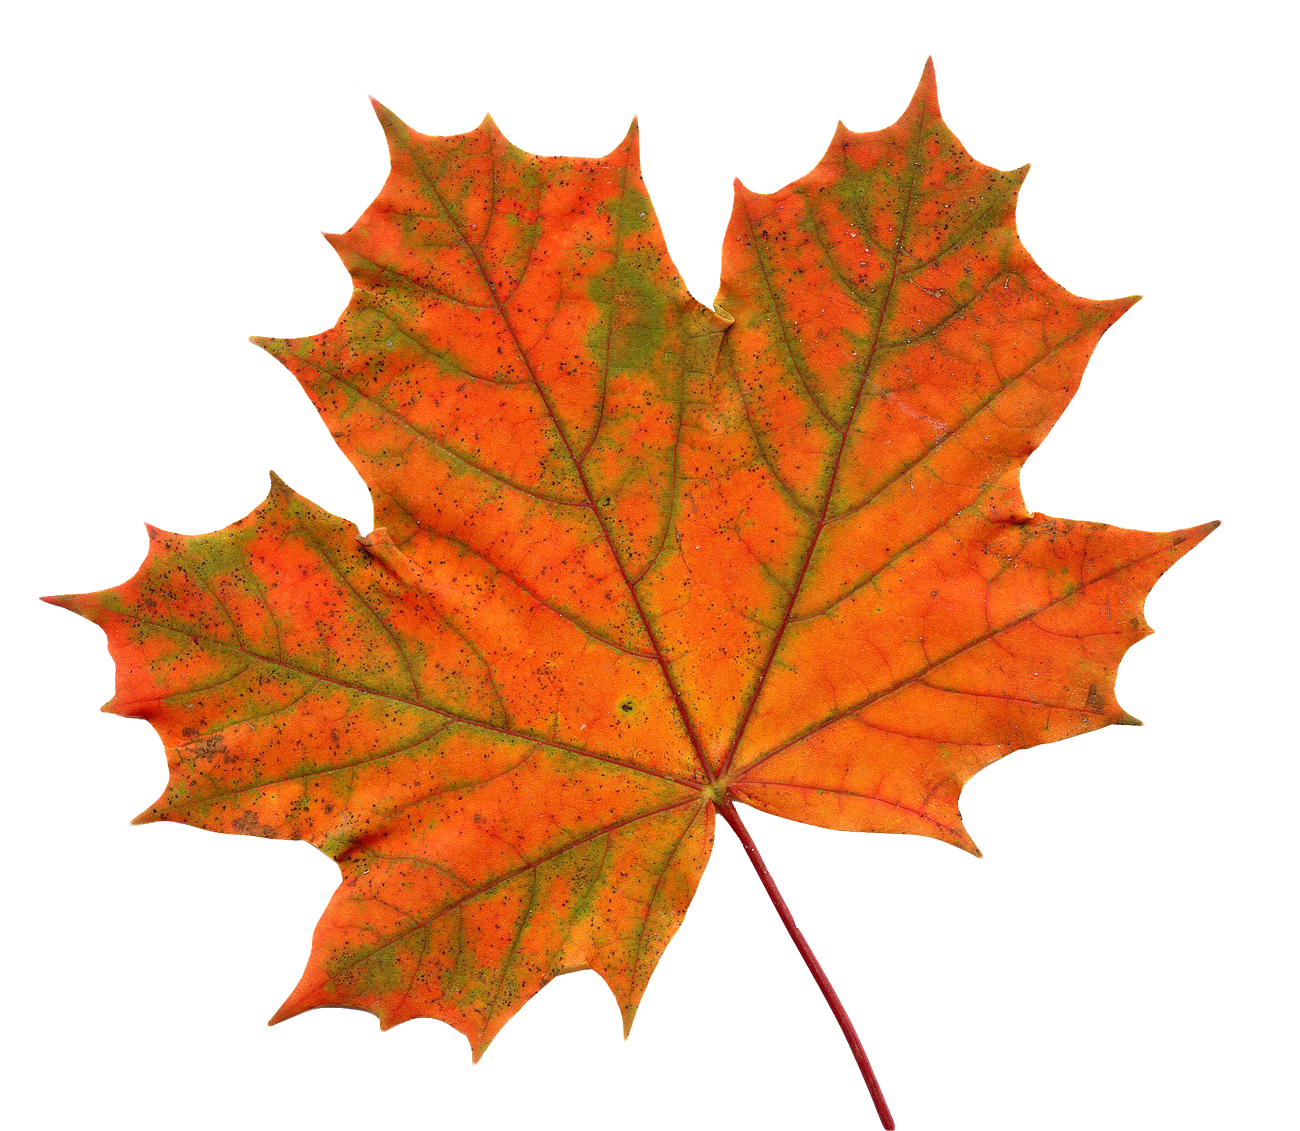 maple leaf png transparent image pngpix 9876